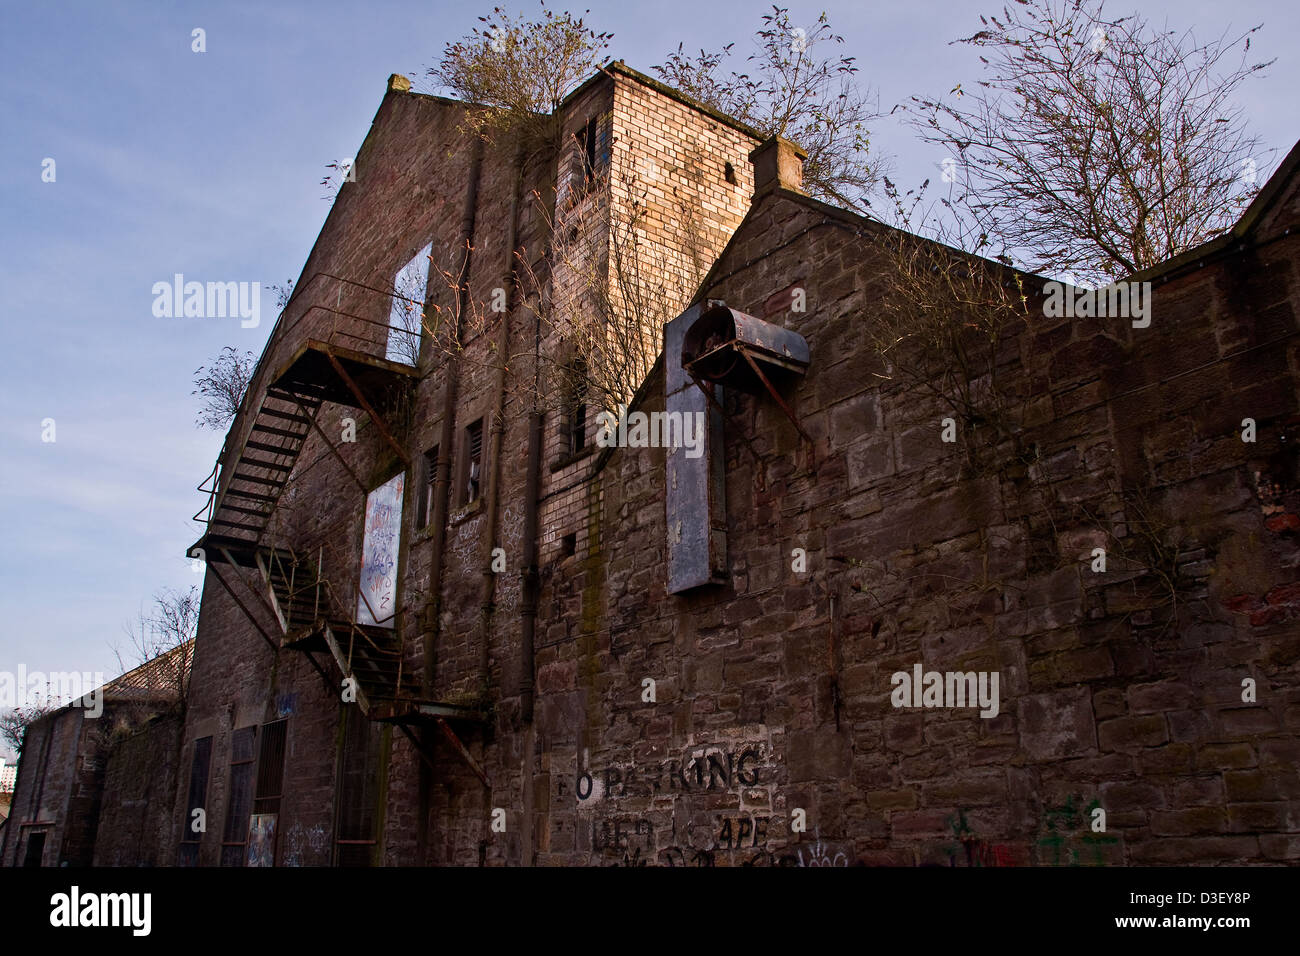 Abandoned and derelict 19th Century Queen Victoria Works in Dundee,UK - Stock Image